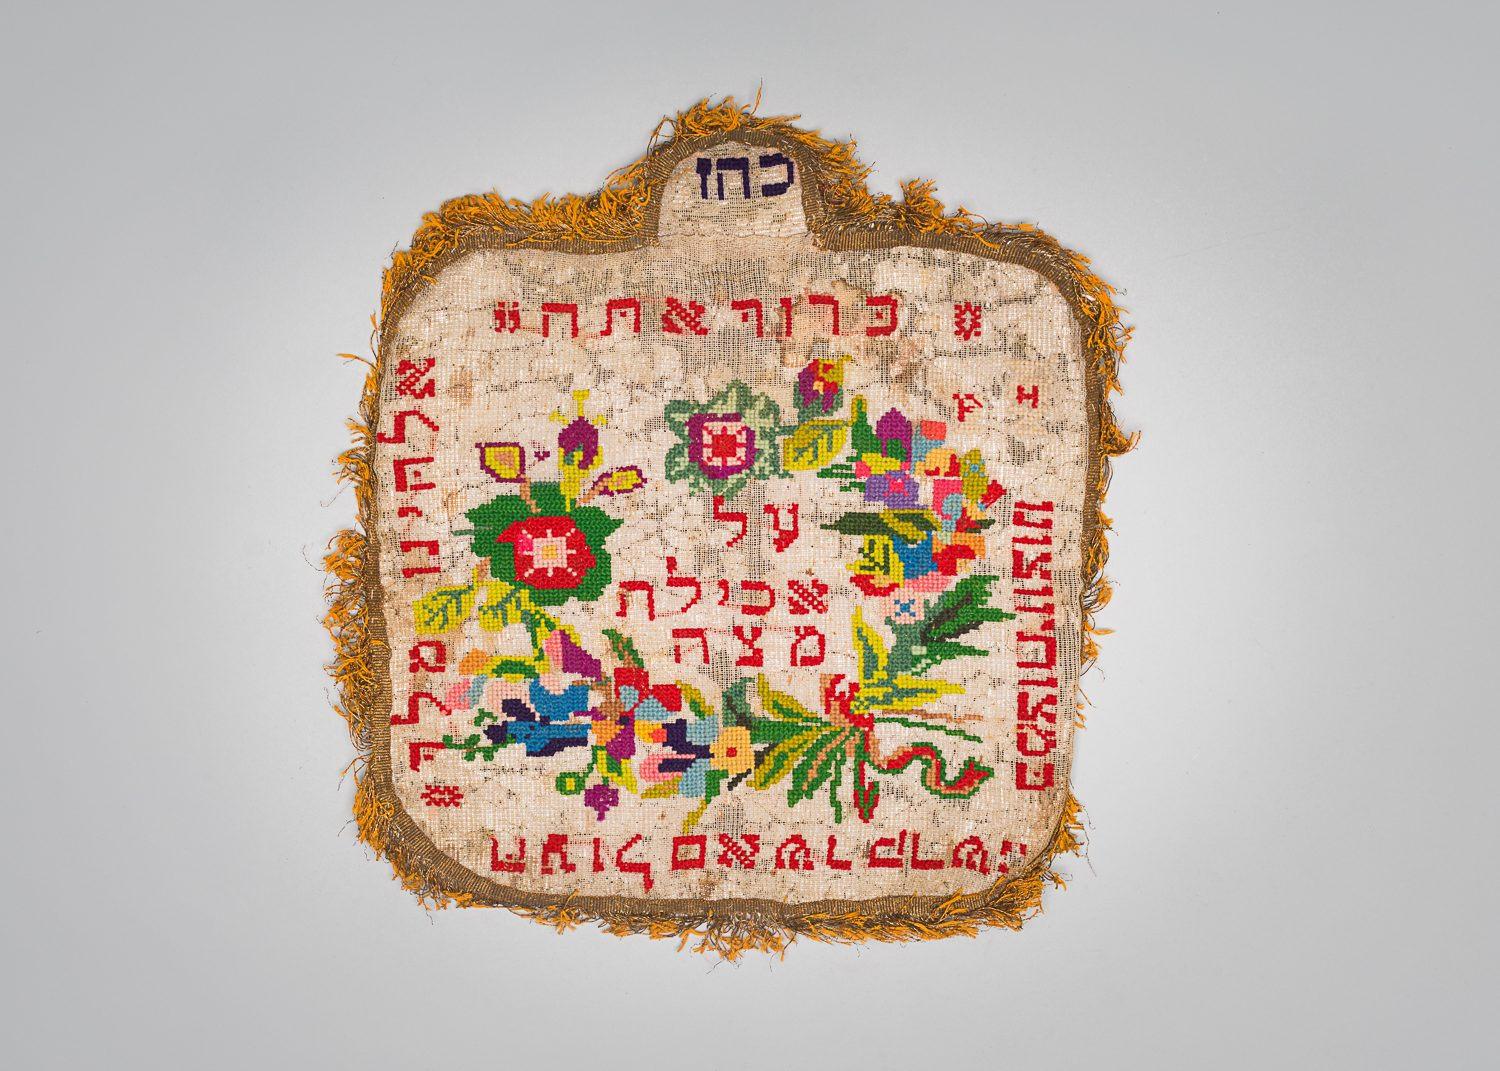 This matzah cover belonged to Martha Blum's family who lived in Czernowitz, today in Ukraine. (Photo: Peter Berra)